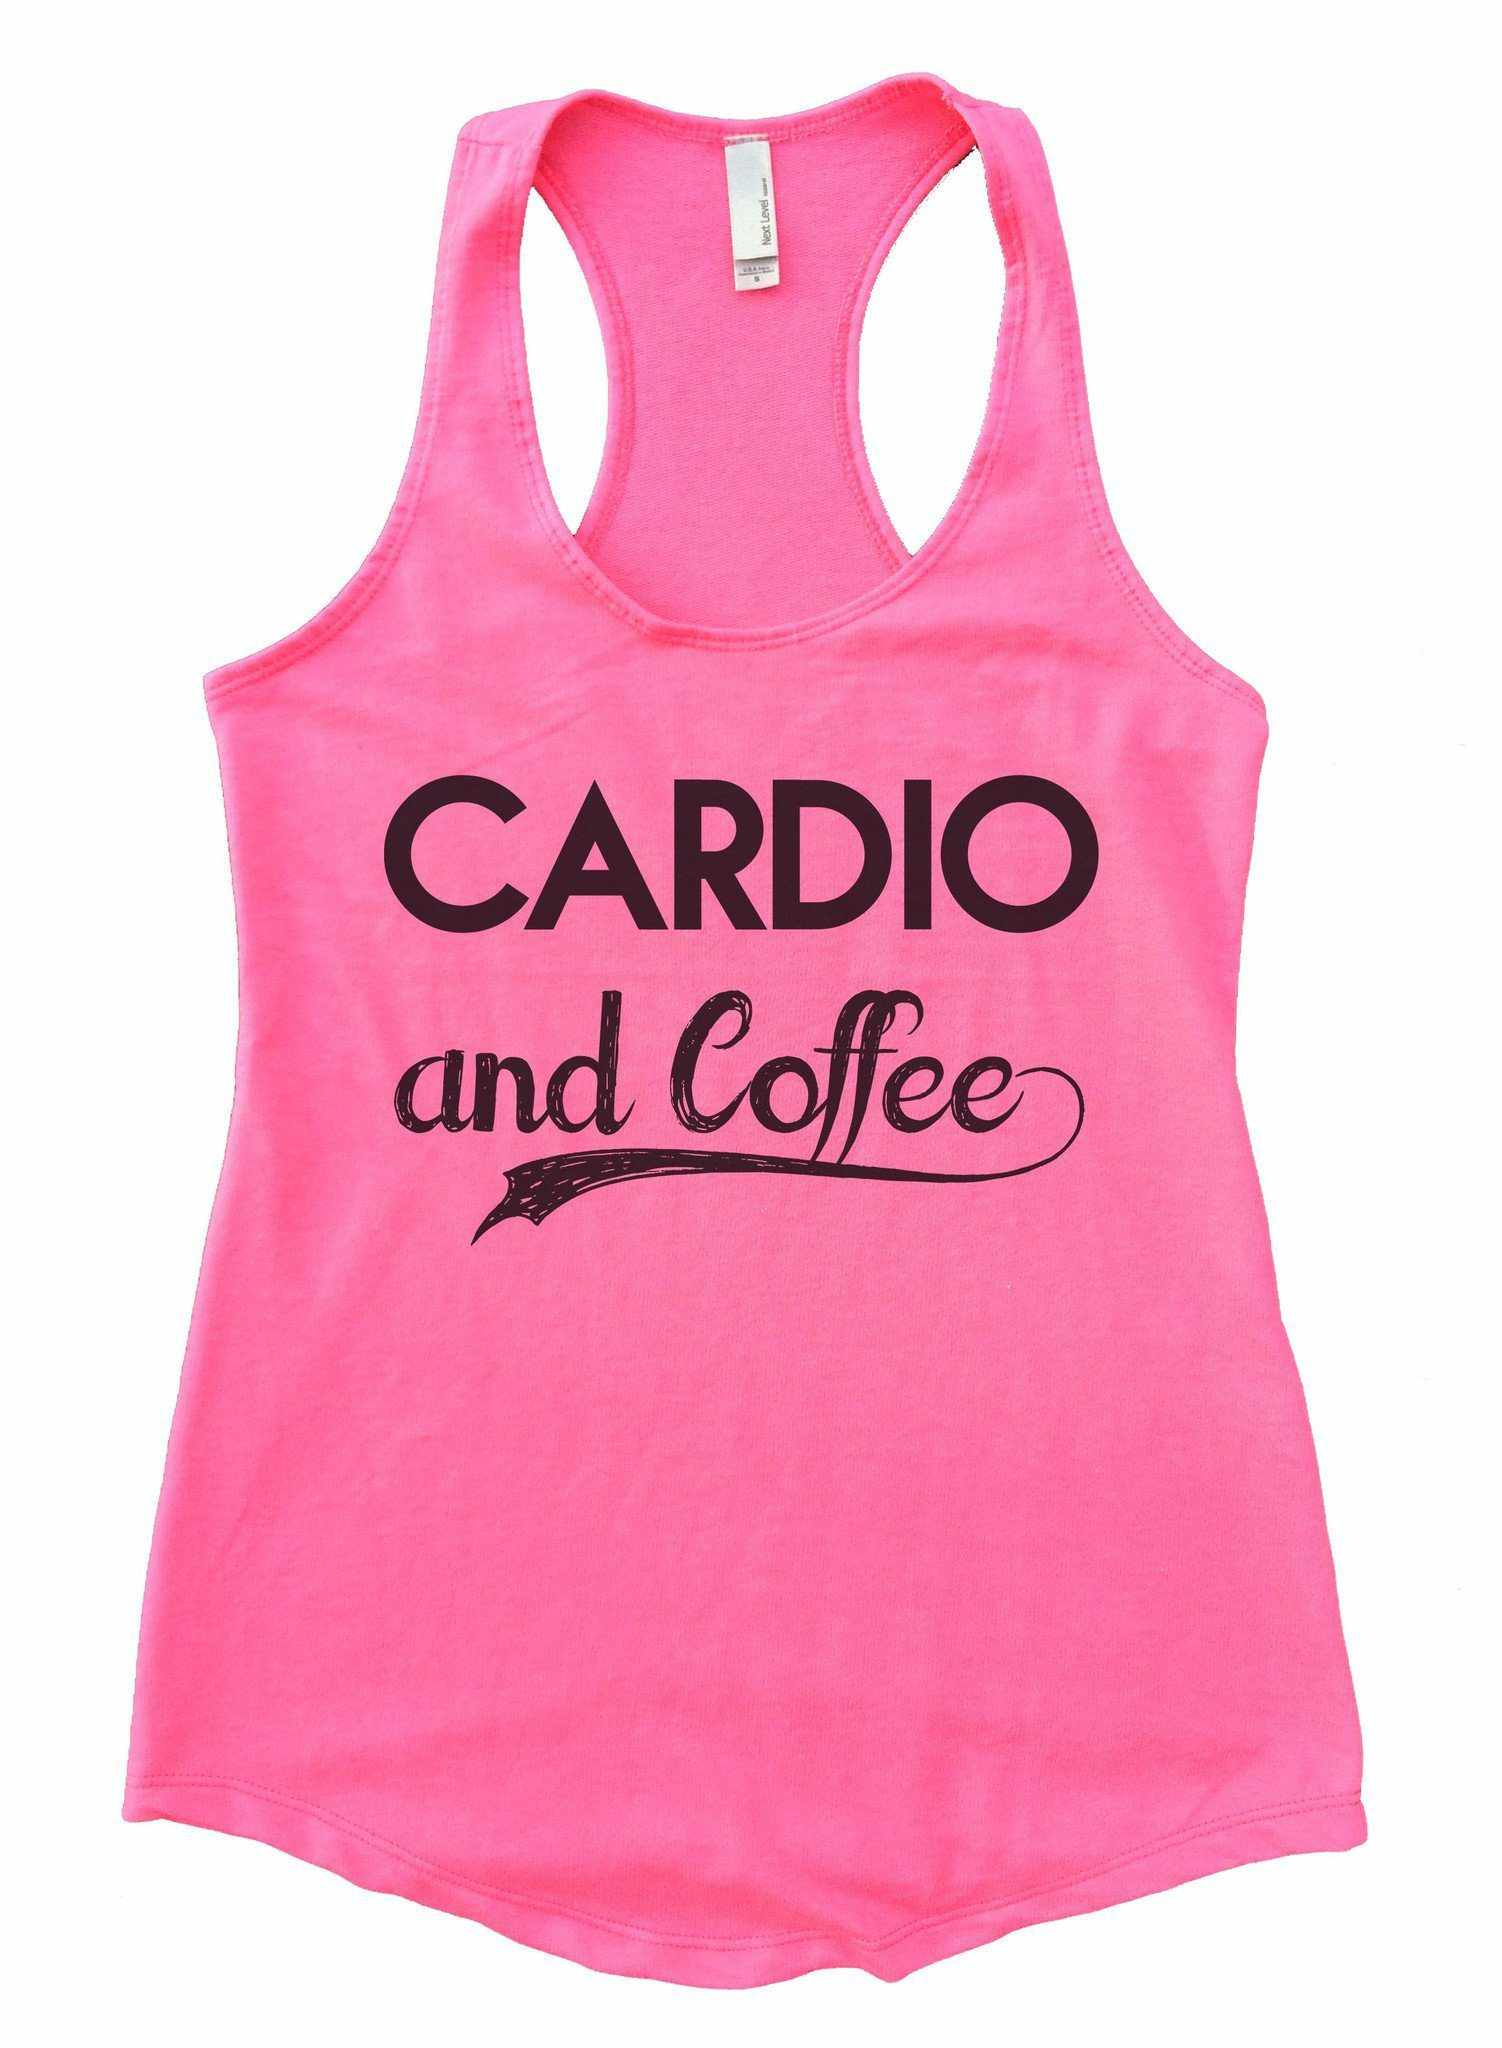 6cabda1285043 Cardio And Coffee Womens Workout Tank Top